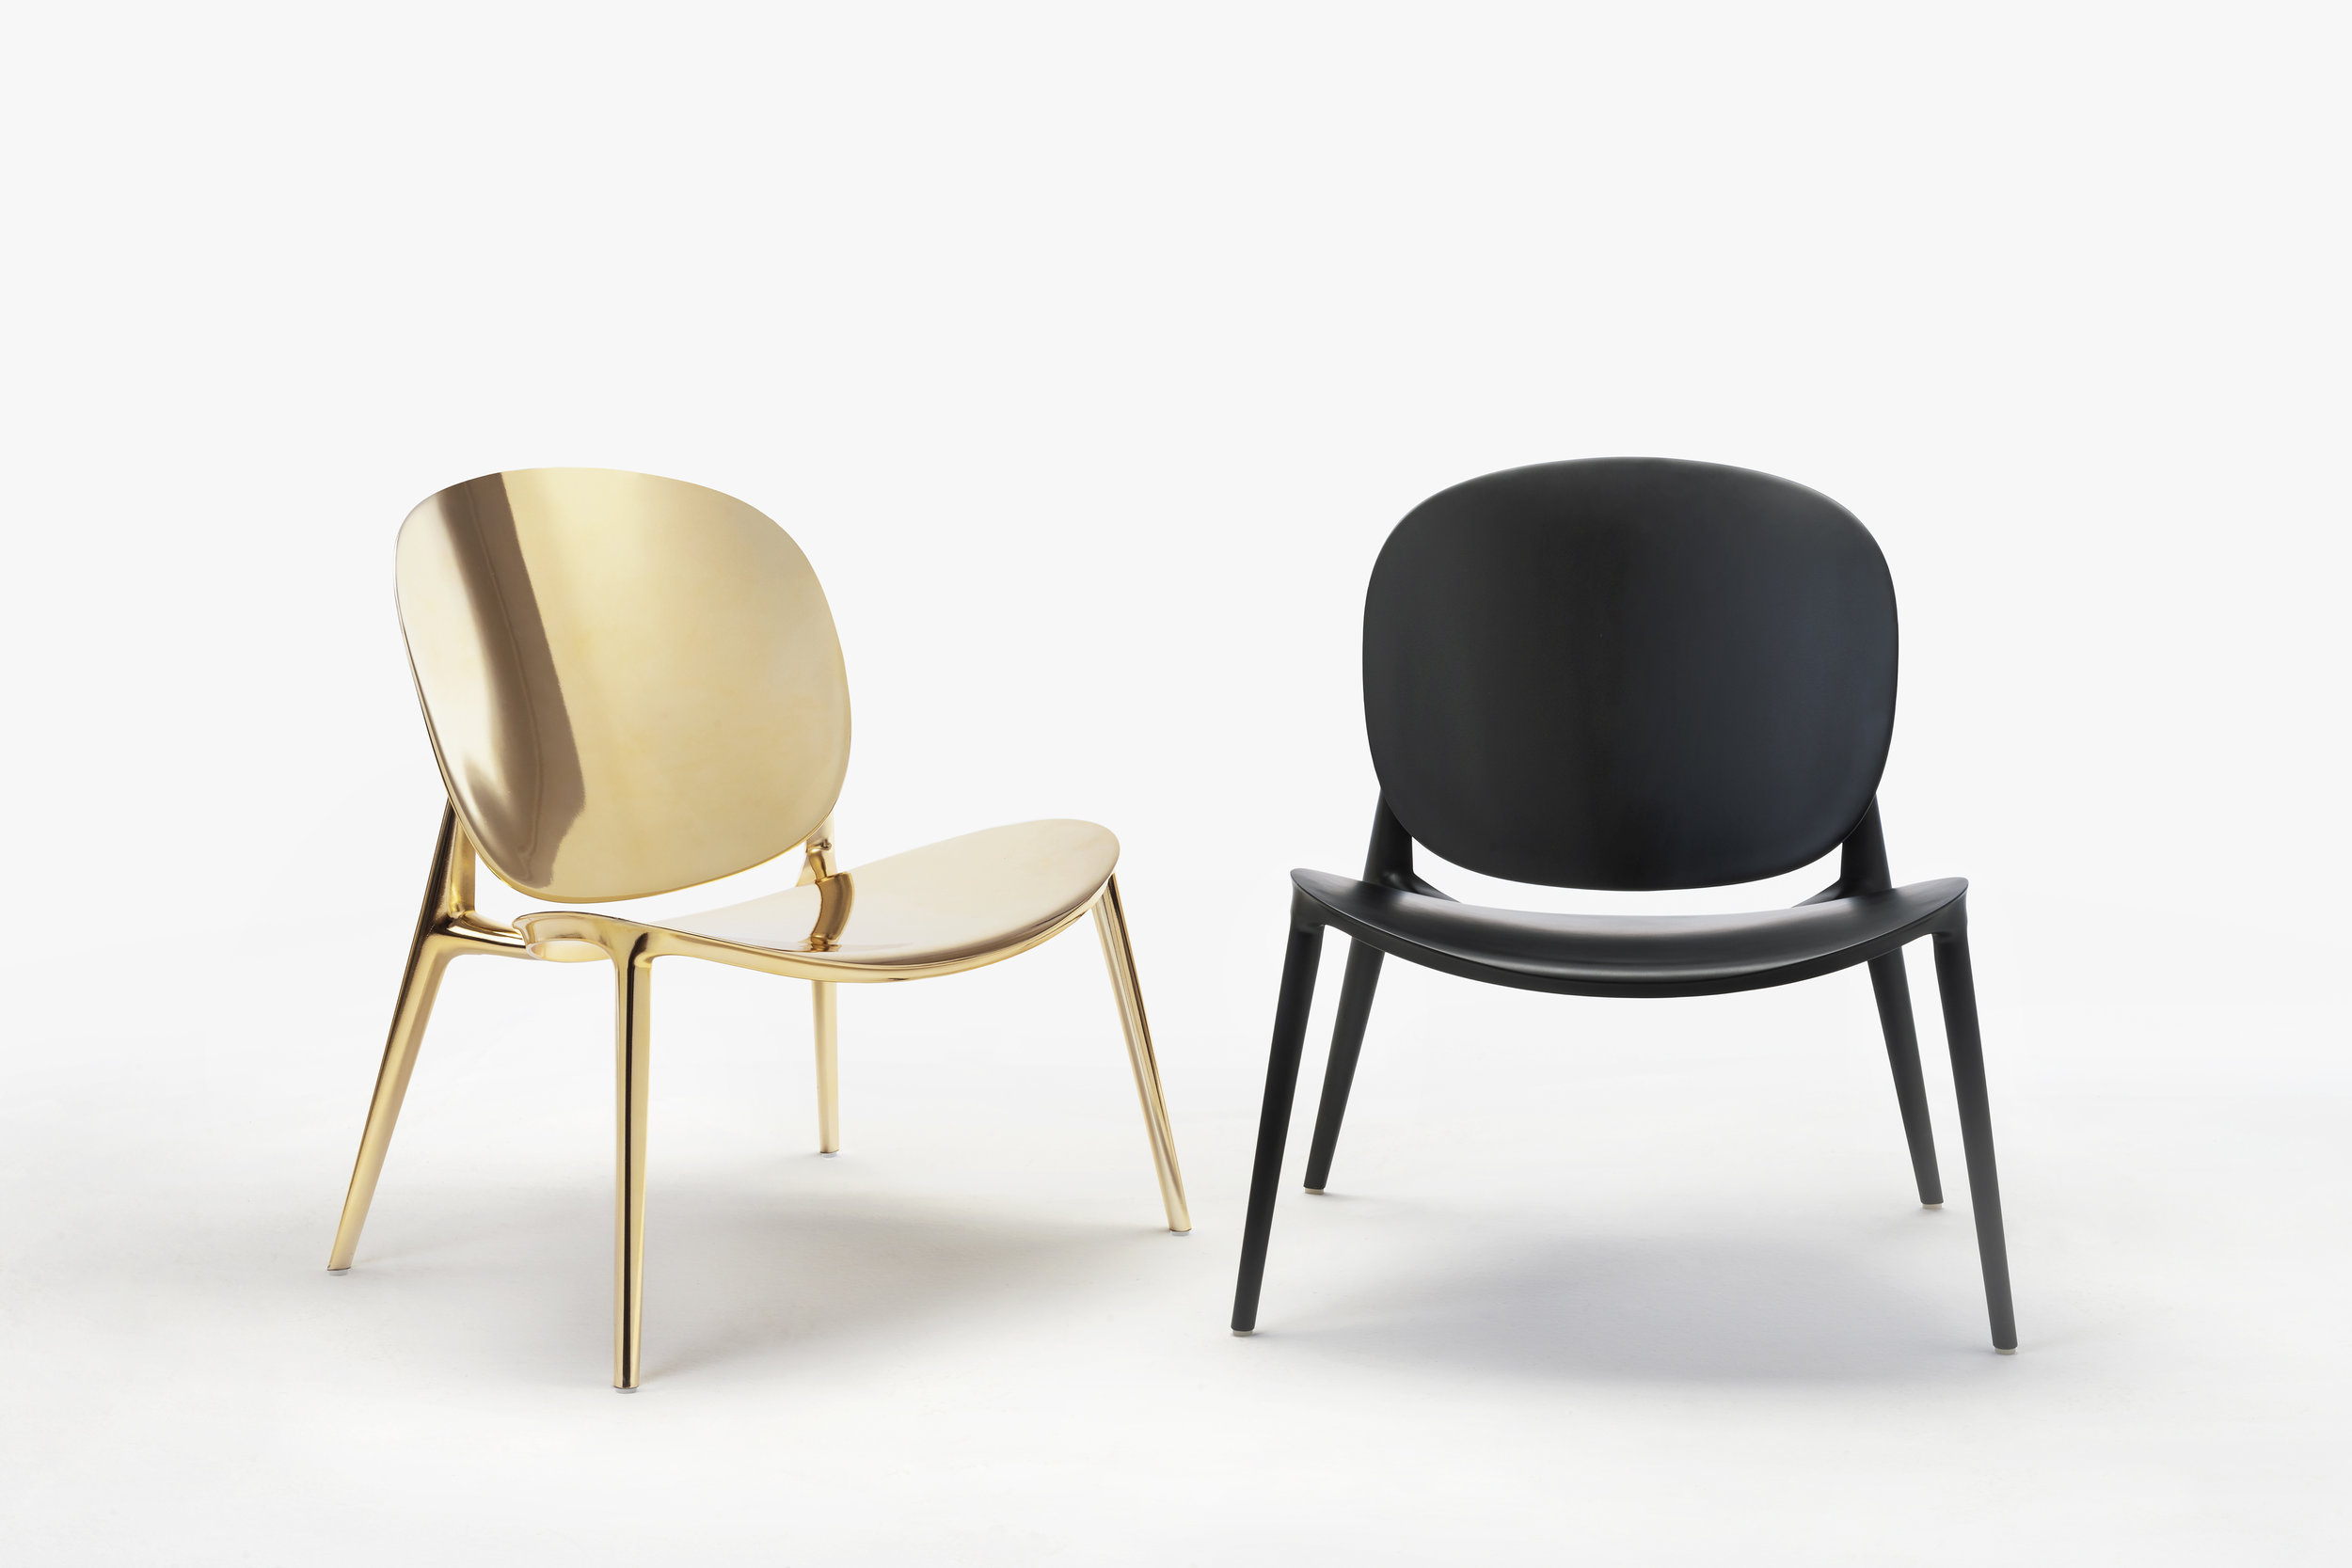 Designed by Ludovica and Roberto Palomba, Be bop was named after the jazz movement with a form developed from the lines of a traditional carved African stool merged with the softly curved plywood shapes of the mid-20th century. Photo © Kartell.